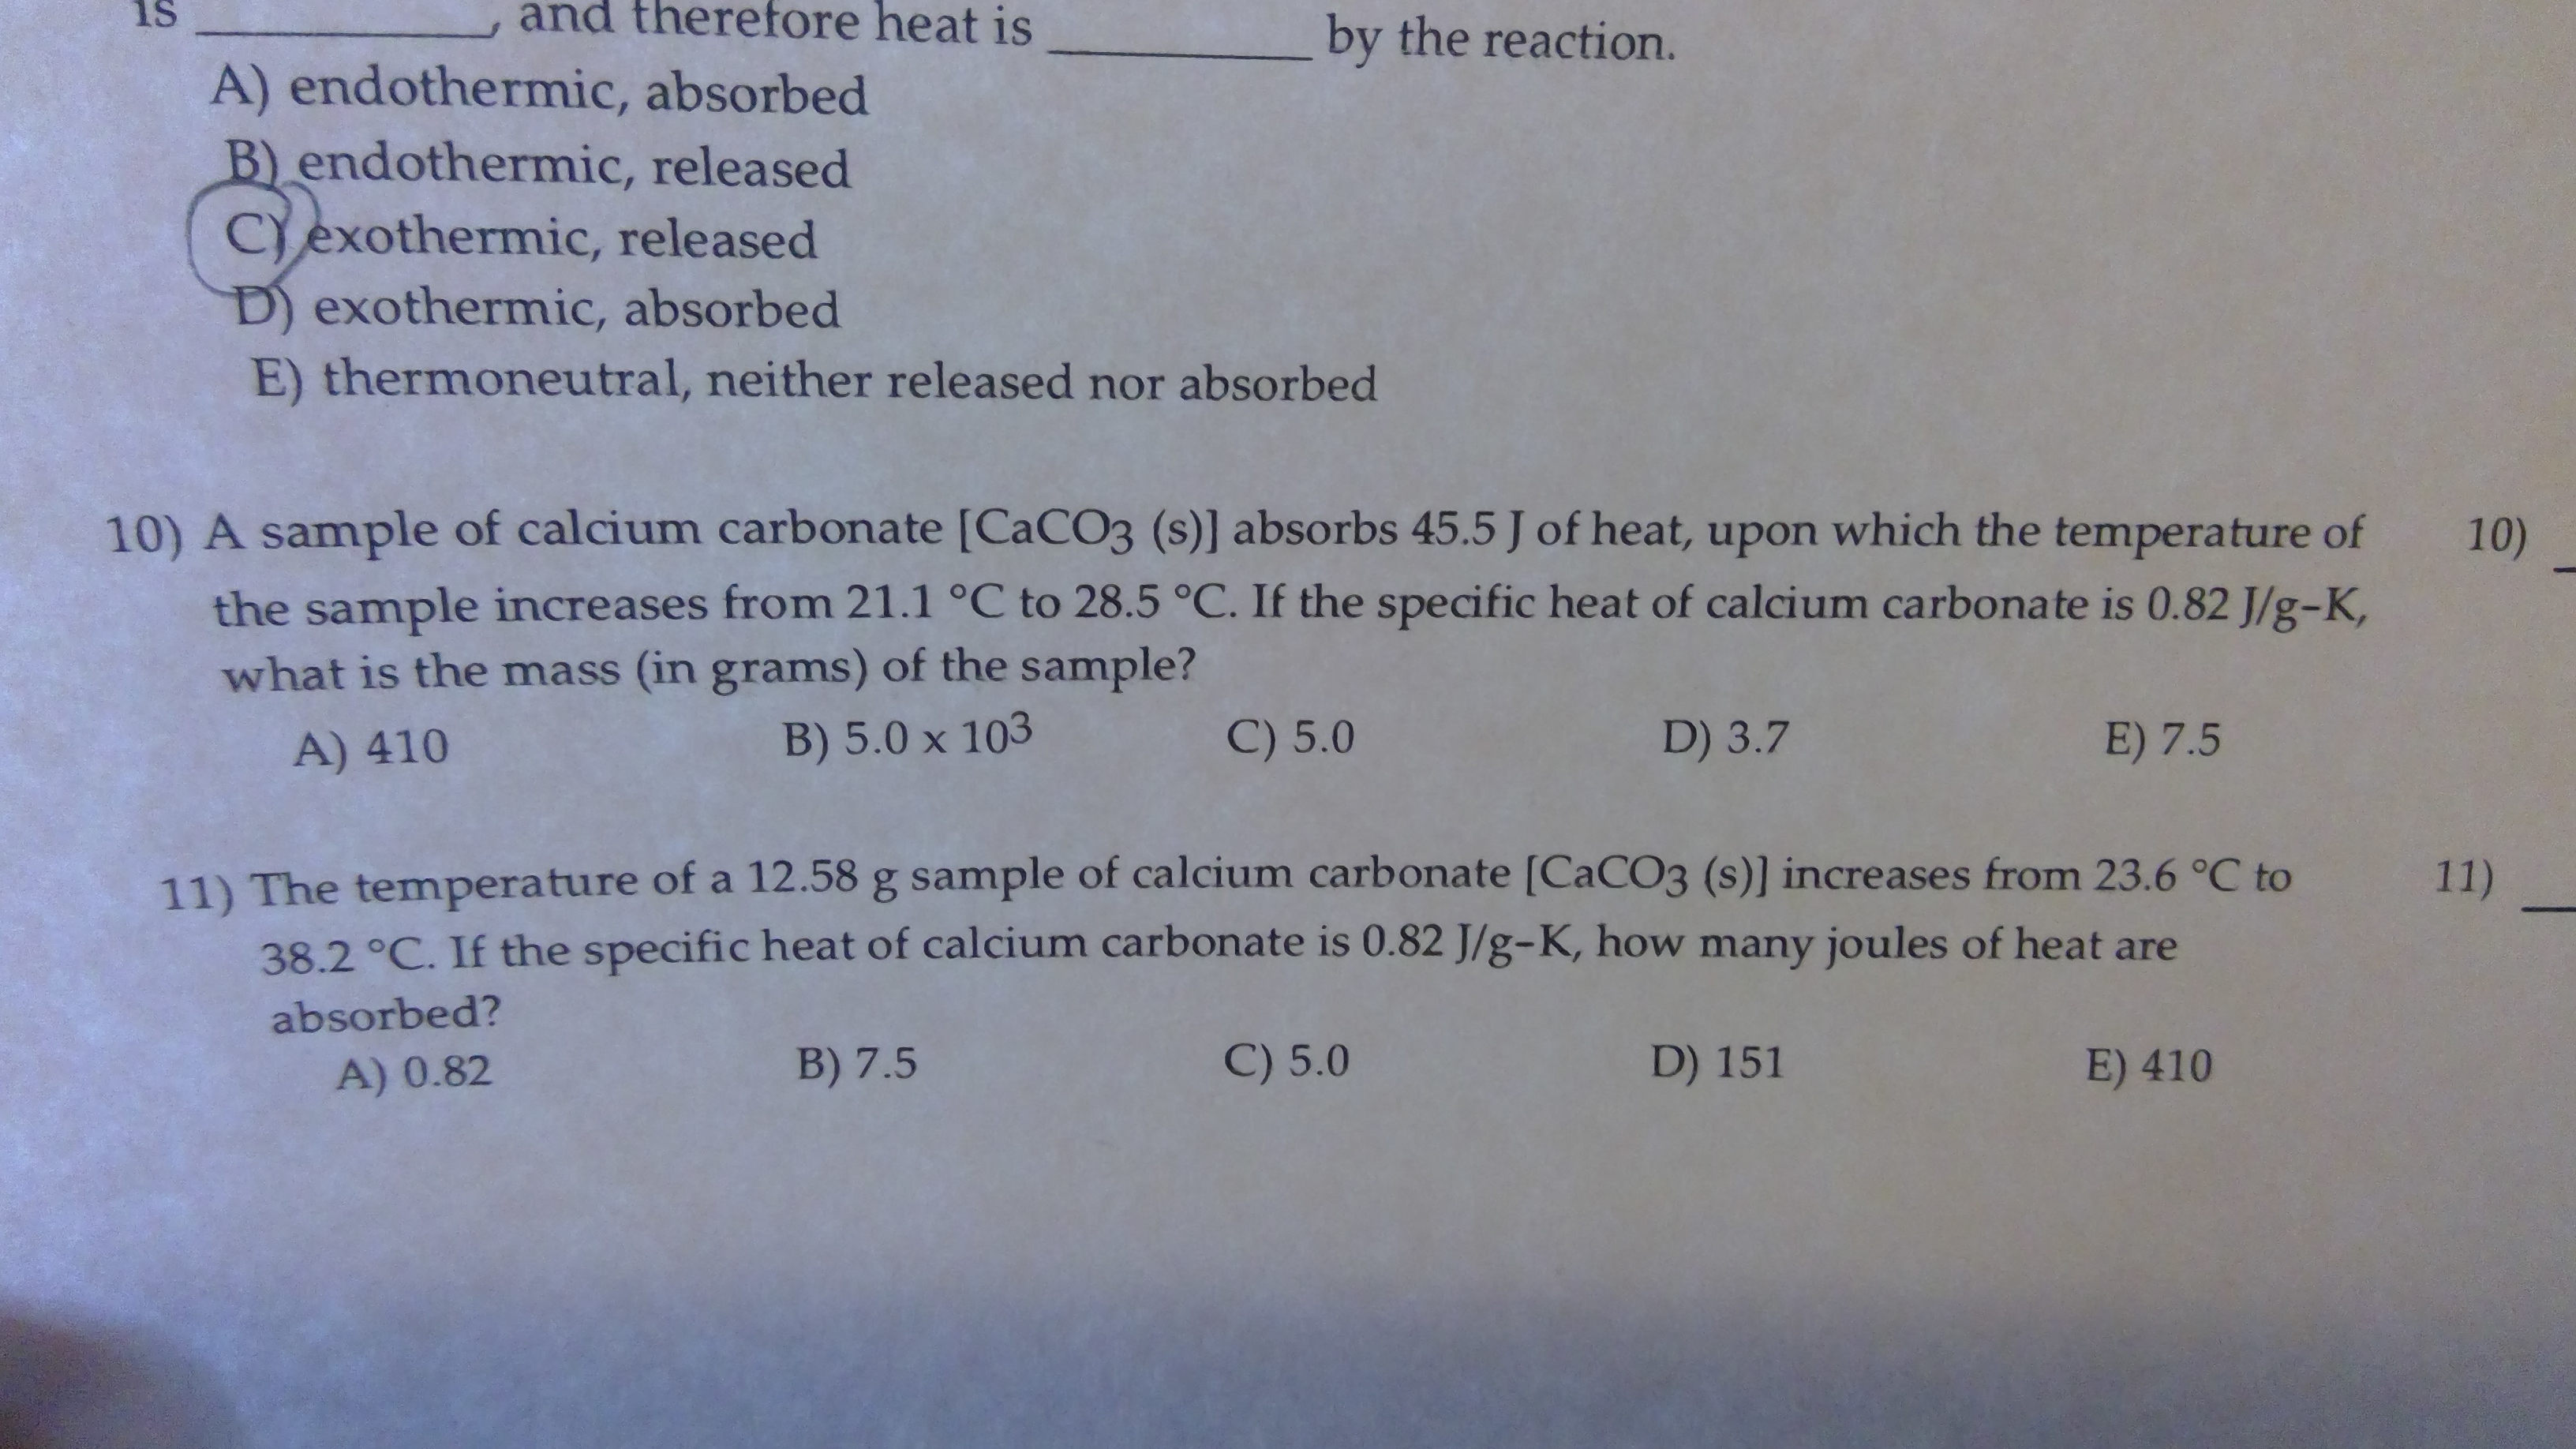 and therefore heat is is by the reaction. A) endothermic, absorbed B) endothermic, released Cexothermic, released D) exothermic, absorbed E) thermoneutral, neither released nor absorbed 10) A sample of calcium carbonate [CaCO3 (s)] absorbs 45.5 J of heat, upon which the temperature of 10) the sample increases from 21.1 °C to 28.5 °C. If the specific heat of calcium carbonate is 0.82 J/g-K, what is the mass (in grams) of the sample? C) 5.0 D) 3.7 E) 7.5 B) 5.0 x 103 A) 410 11) The temperatu re of a 12.58 g sample of calcium carbonate [CaCO3 (s)] incre ases from 23.6 °C to 38.2 °C. If the specific heat of calcium carbonate is 0.82 J/g-K, how many joules of heat are 11) absorbed? C) 5.0 D) 151 B) 7.5 E) 410 A) 0.82